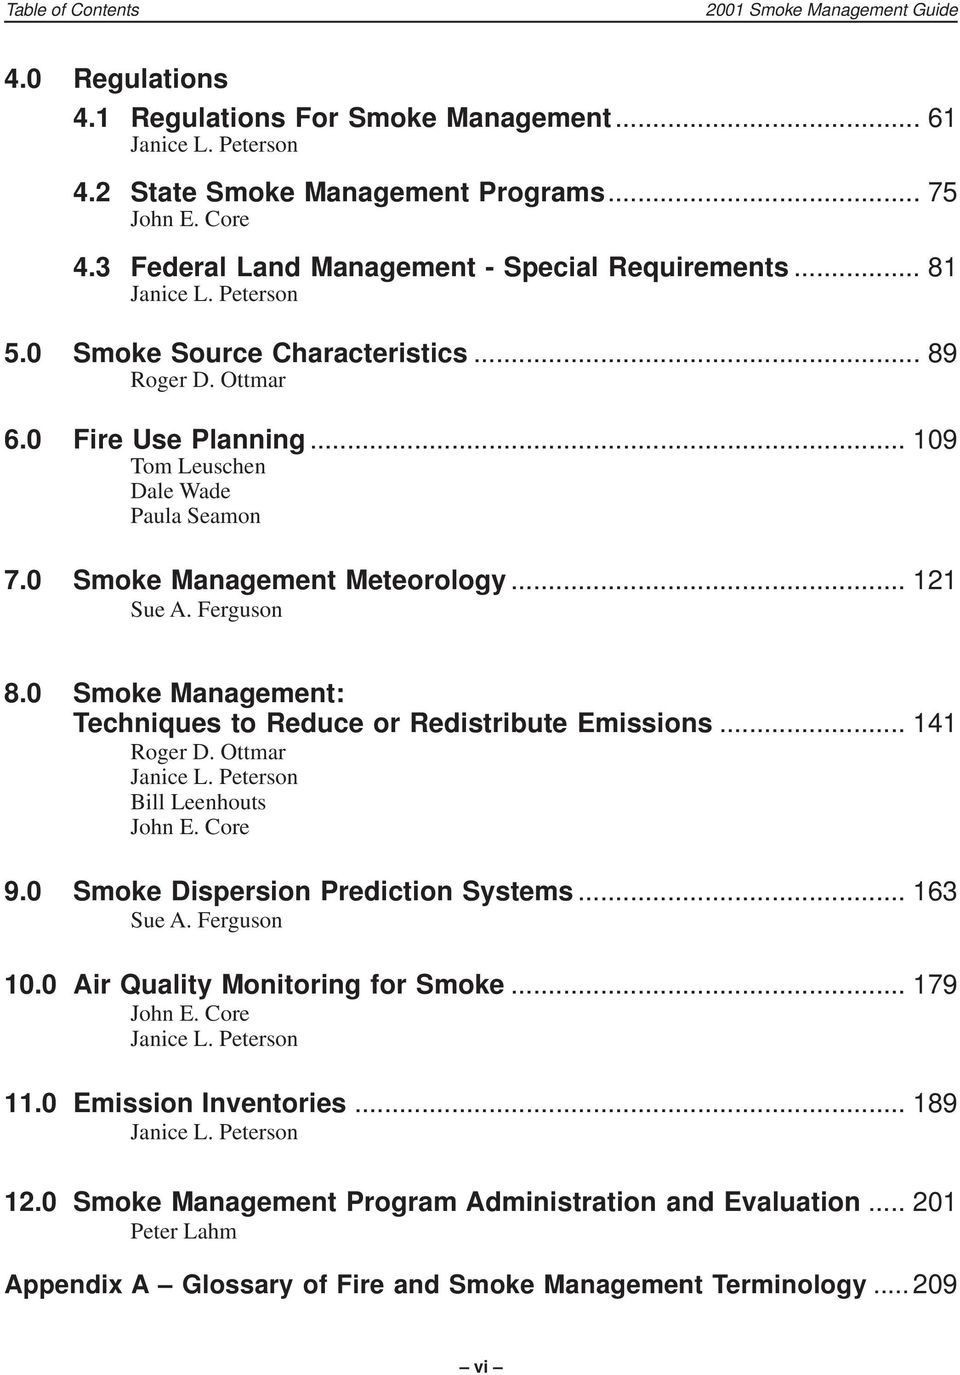 0 Smoke Management Meteorology... 121 Sue A. Ferguson 8.0 Smoke Management: Techniques to Reduce or Redistribute Emissions... 141 Roger D. Ottmar Janice L. Peterson Bill Leenhouts John E. Core 9.